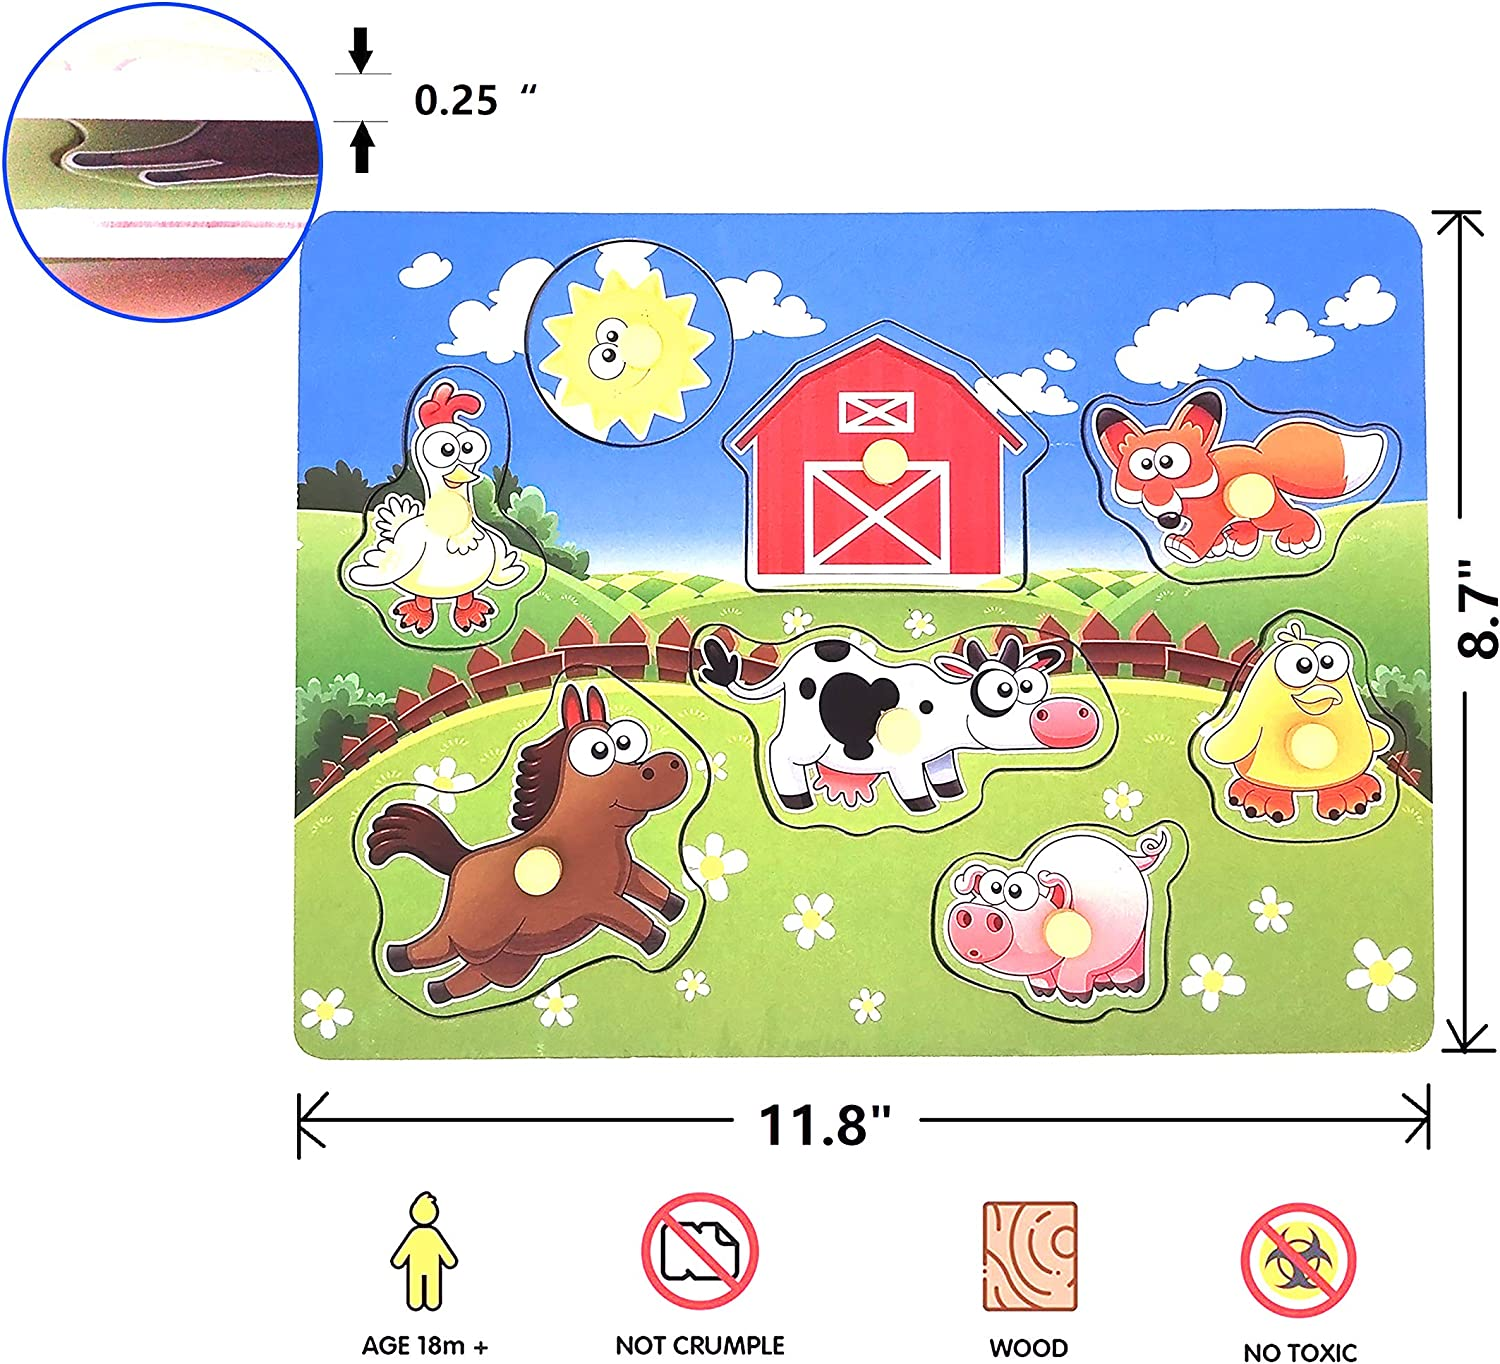 8 Pieces Wooden Peg Puzzle Farm Chunky Baby Puzzles Animal Knob Puzzle for Educational Toddlers 1,2,3,4 Yeas Old Full-Color Pictures Wood Shape Puzzle Peg Board